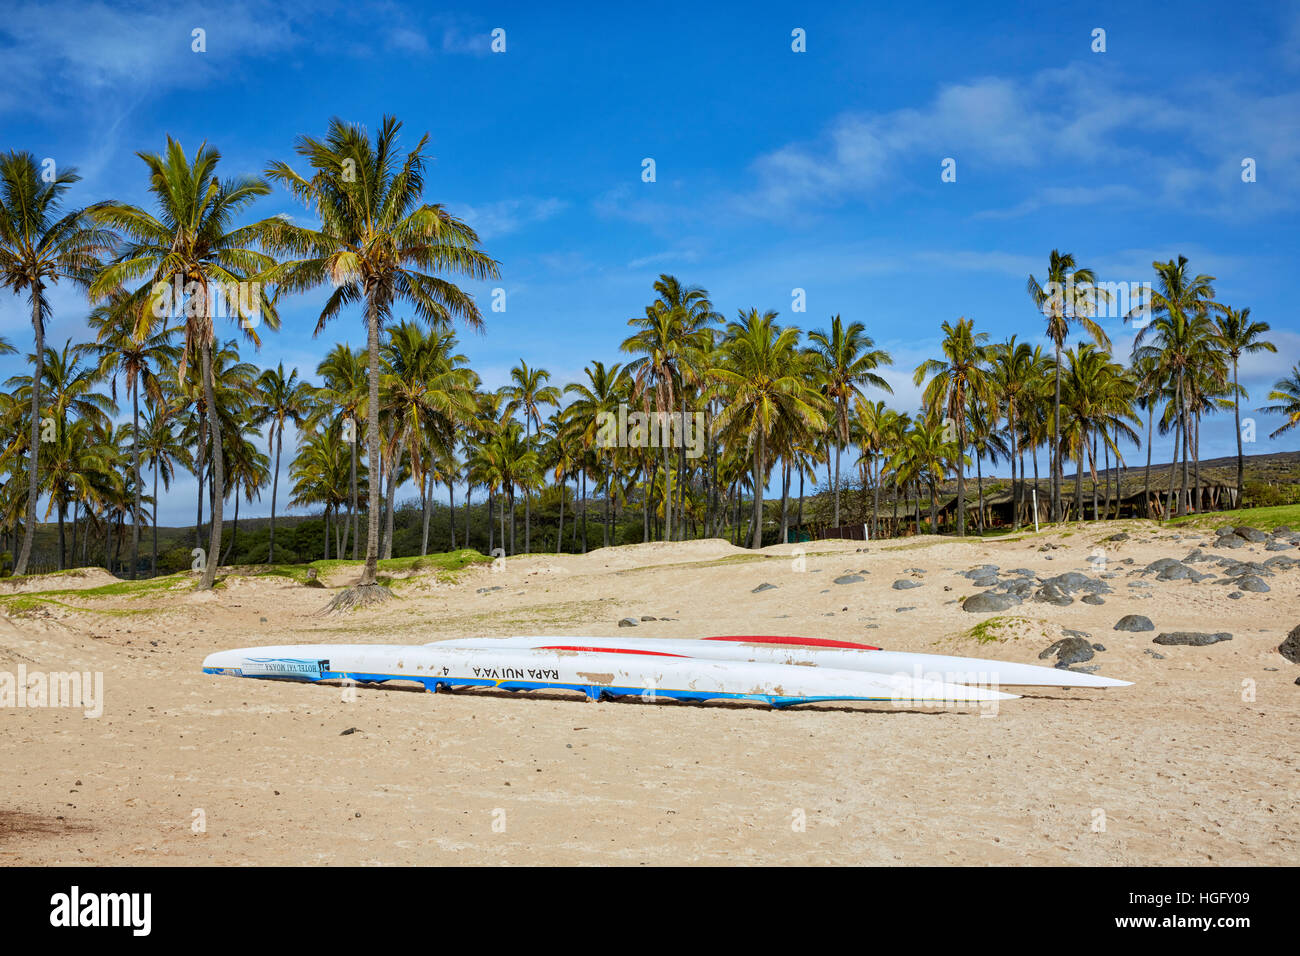 Anakena beach, Easter Island; Chile - Stock Image